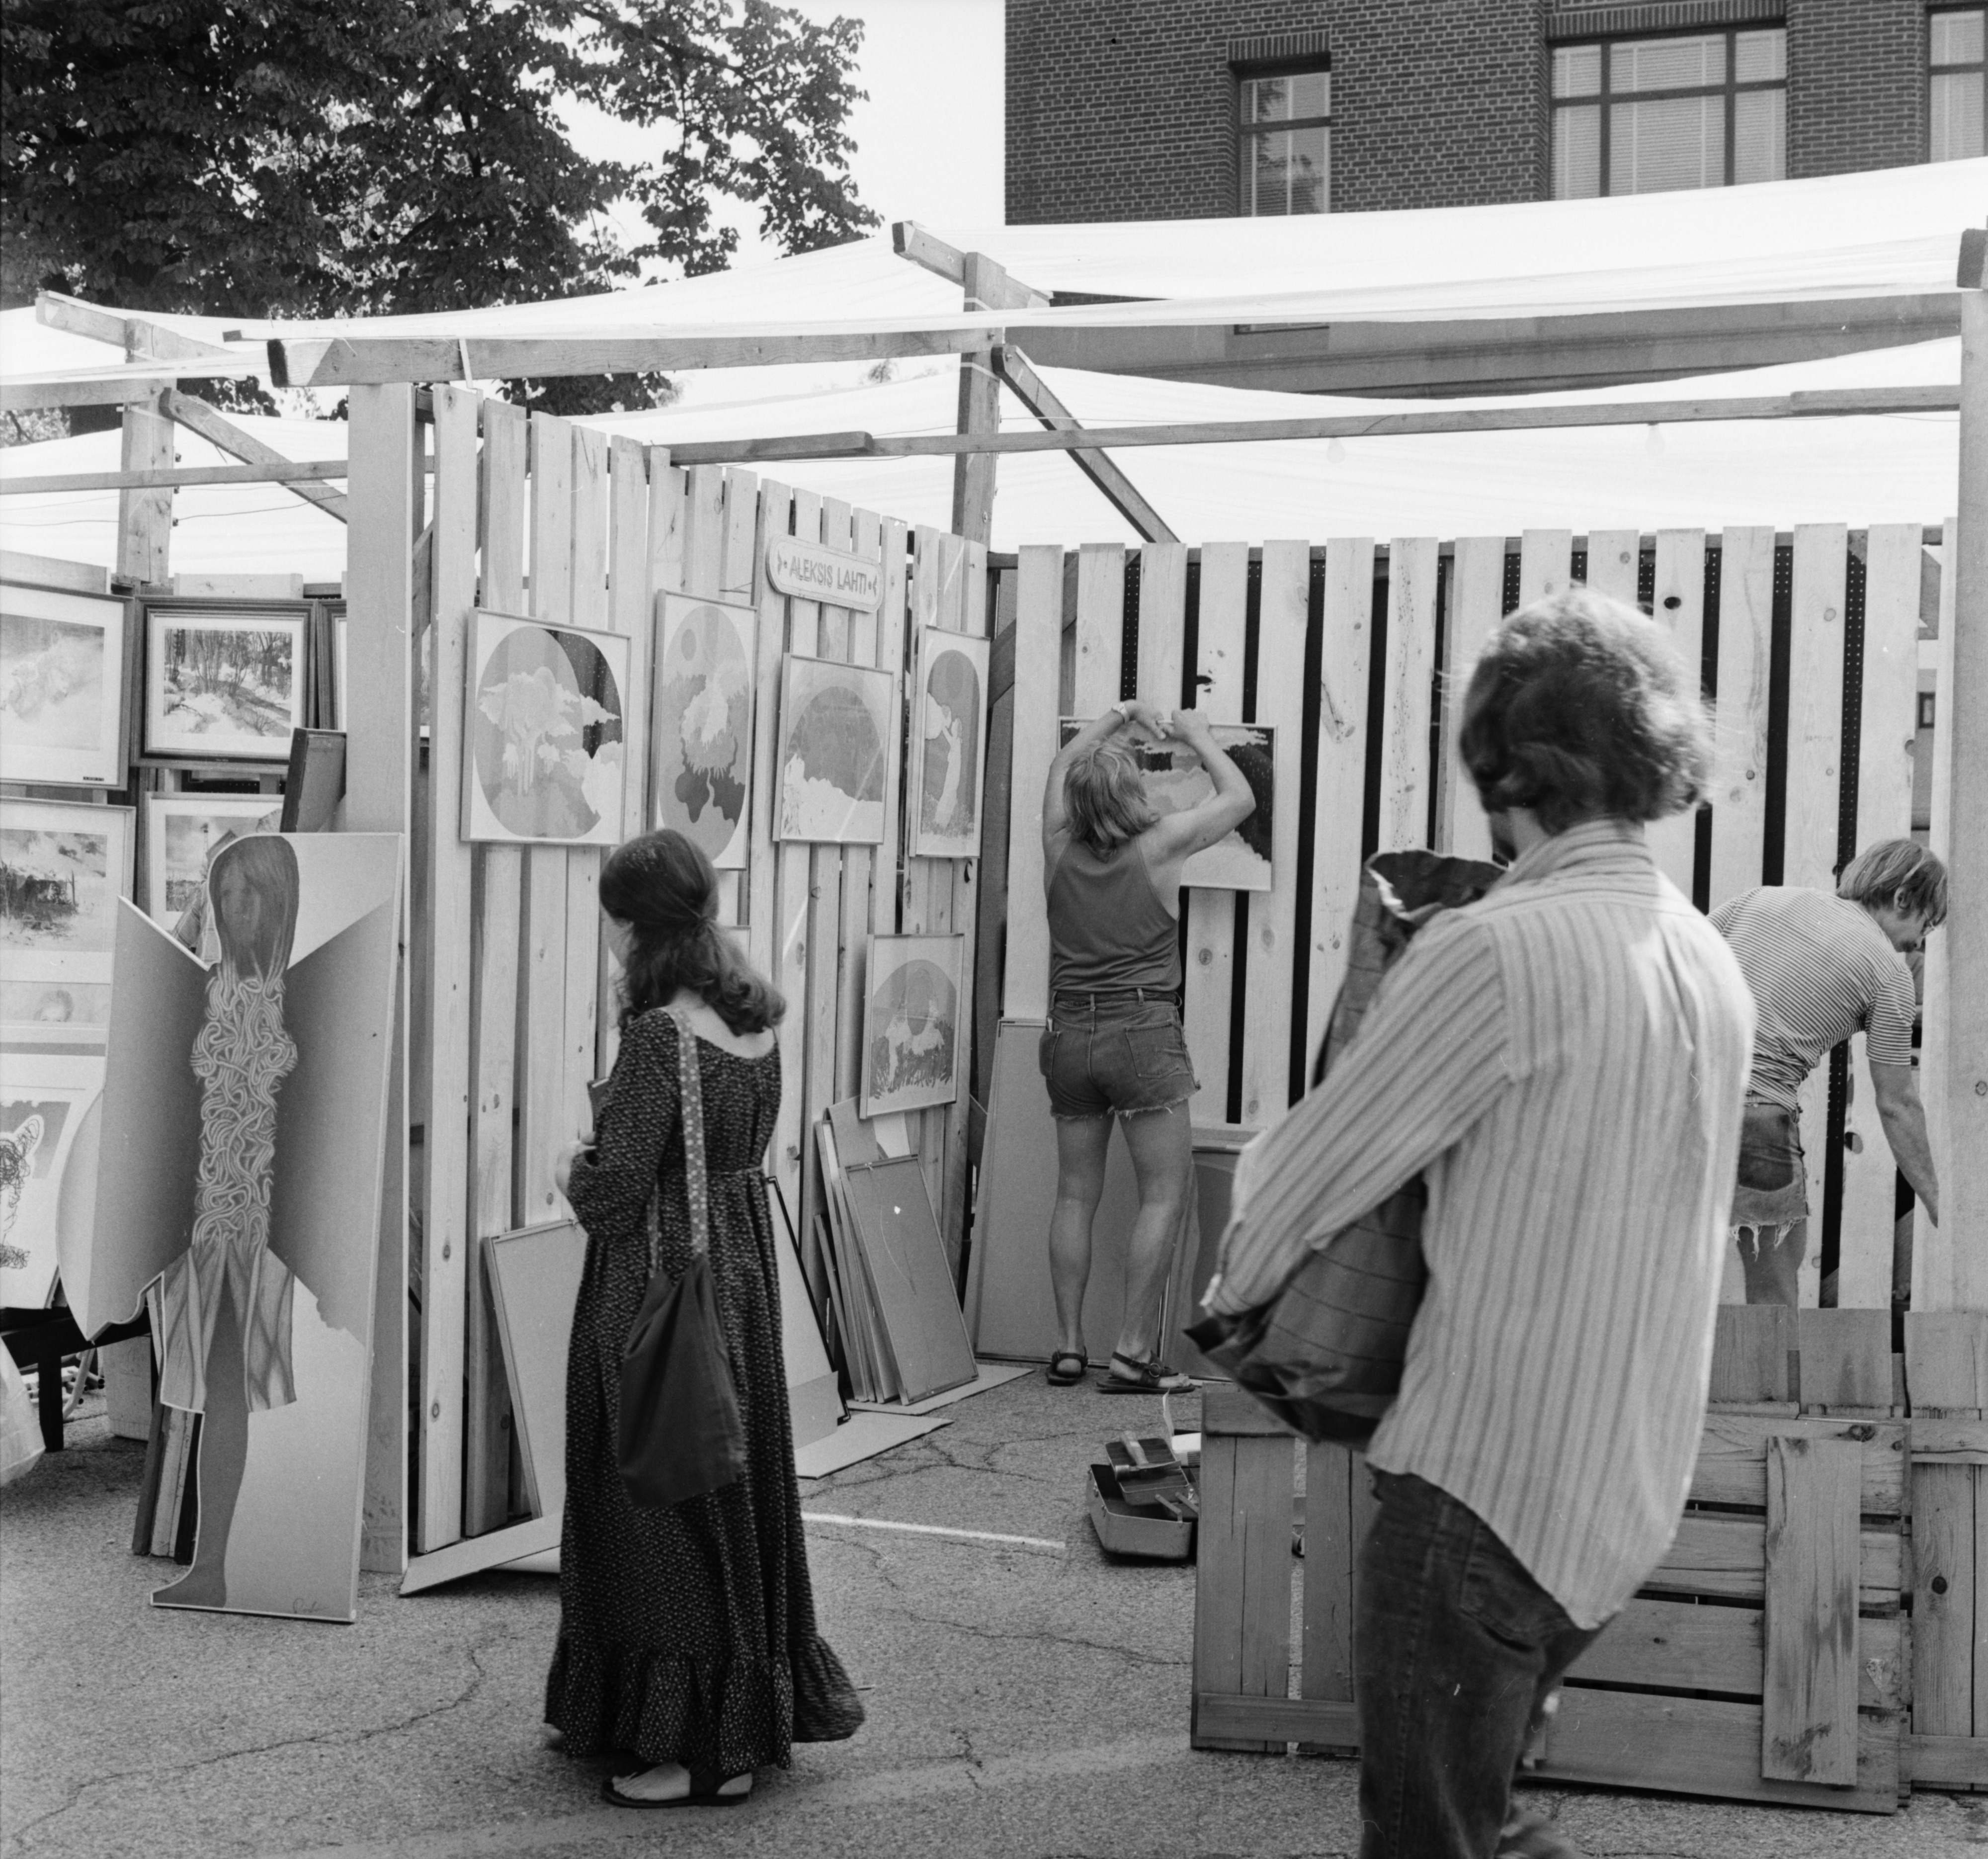 Alexsis Lahti's booth at the Ann Arbor Street Art Fair, July 1971 image